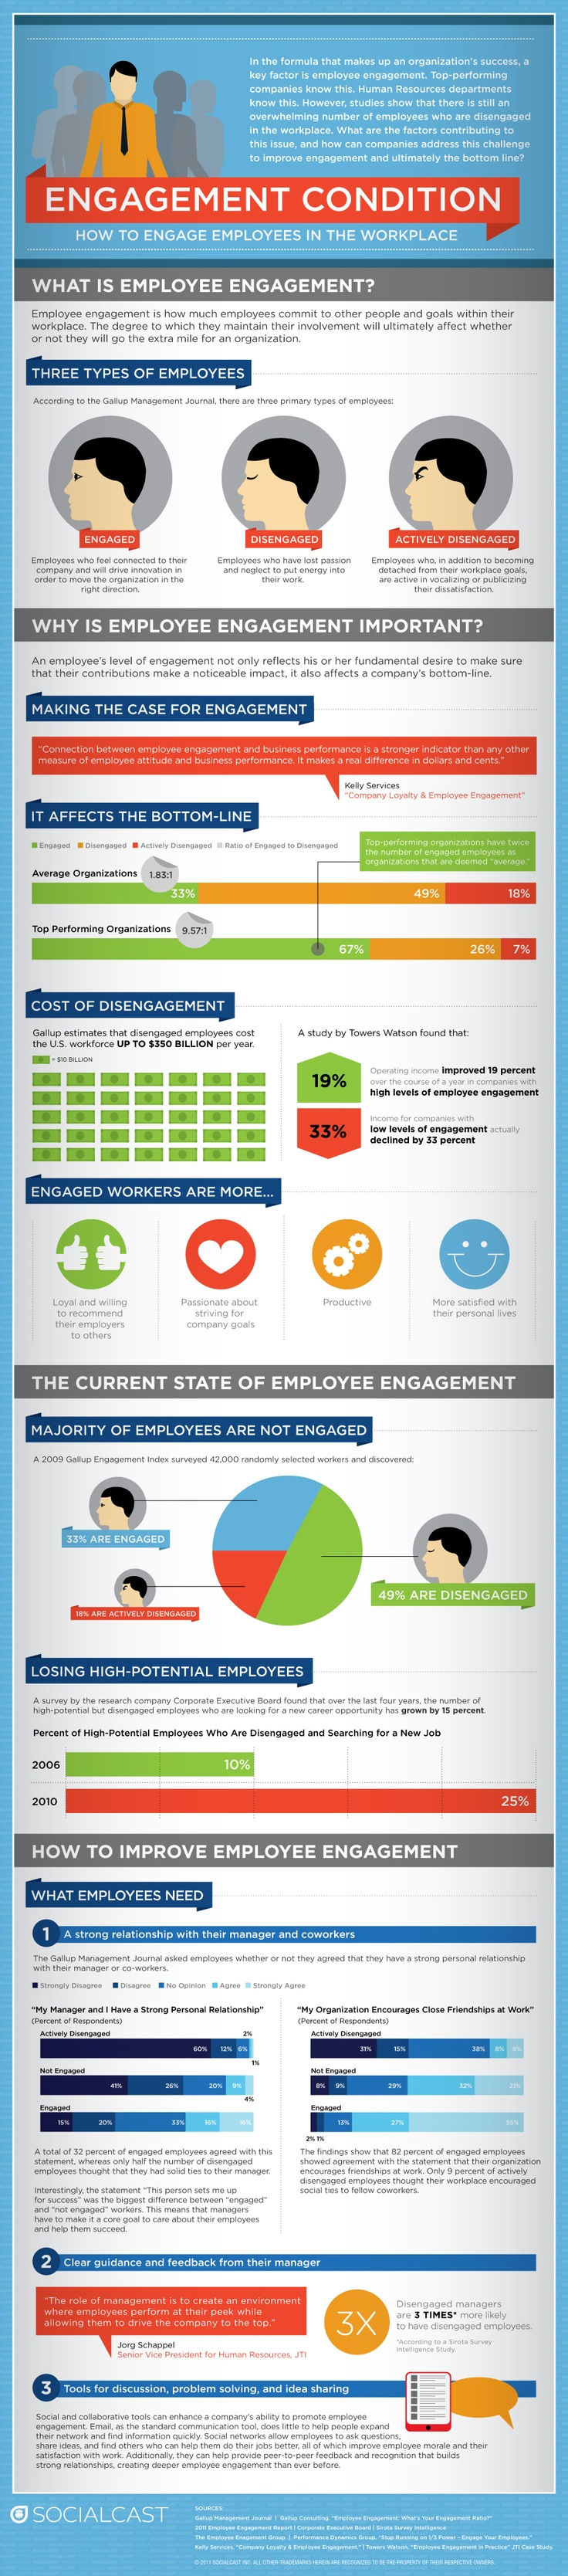 31 best Customer Experience images on Pinterest | Customer ...